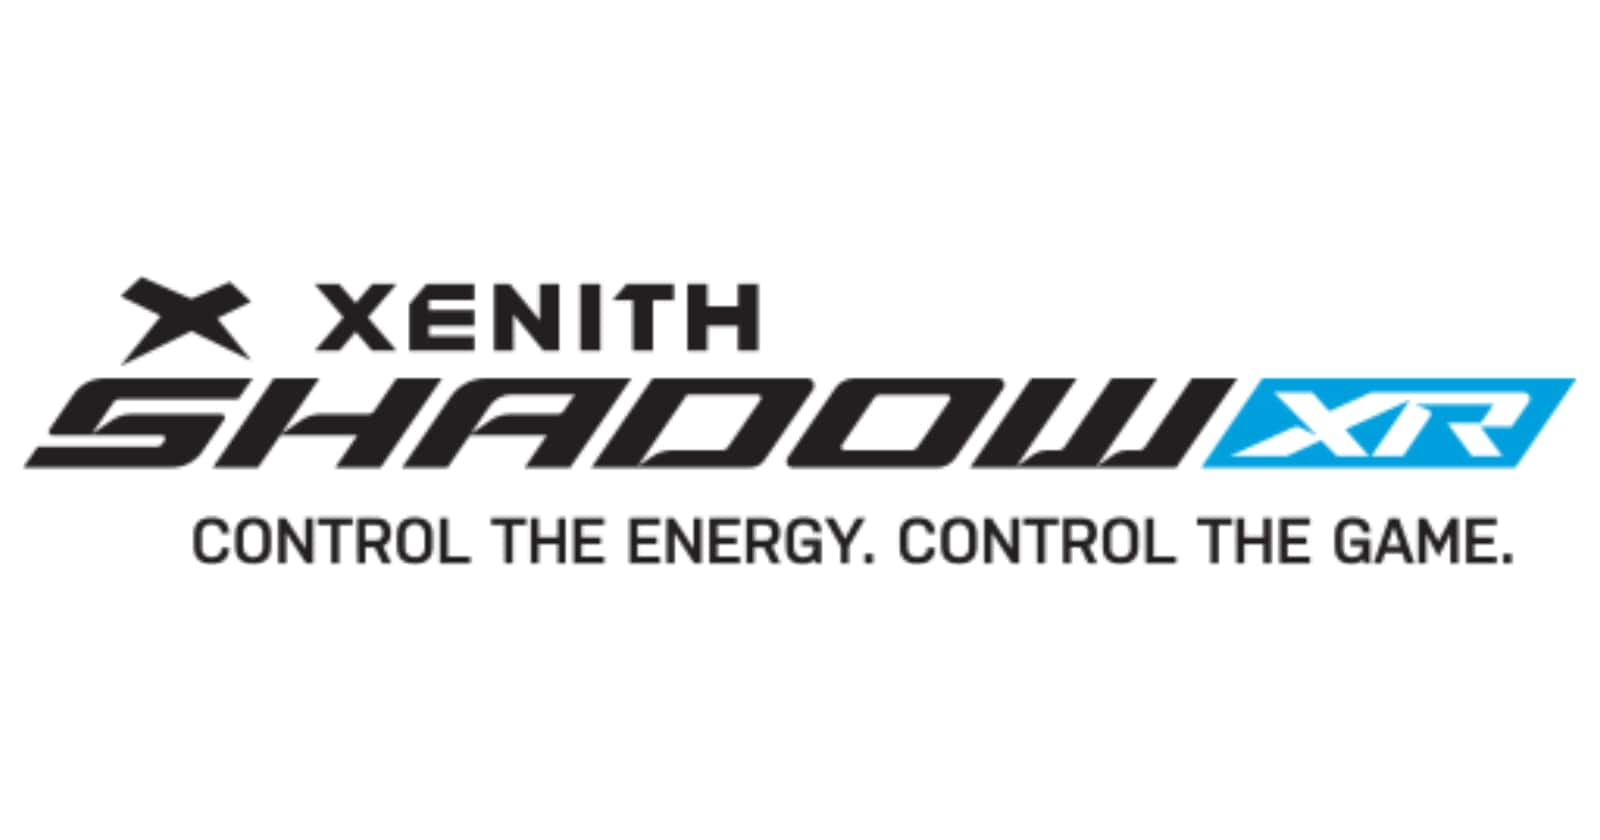 cool xenith graphic for their shadow XR helmet